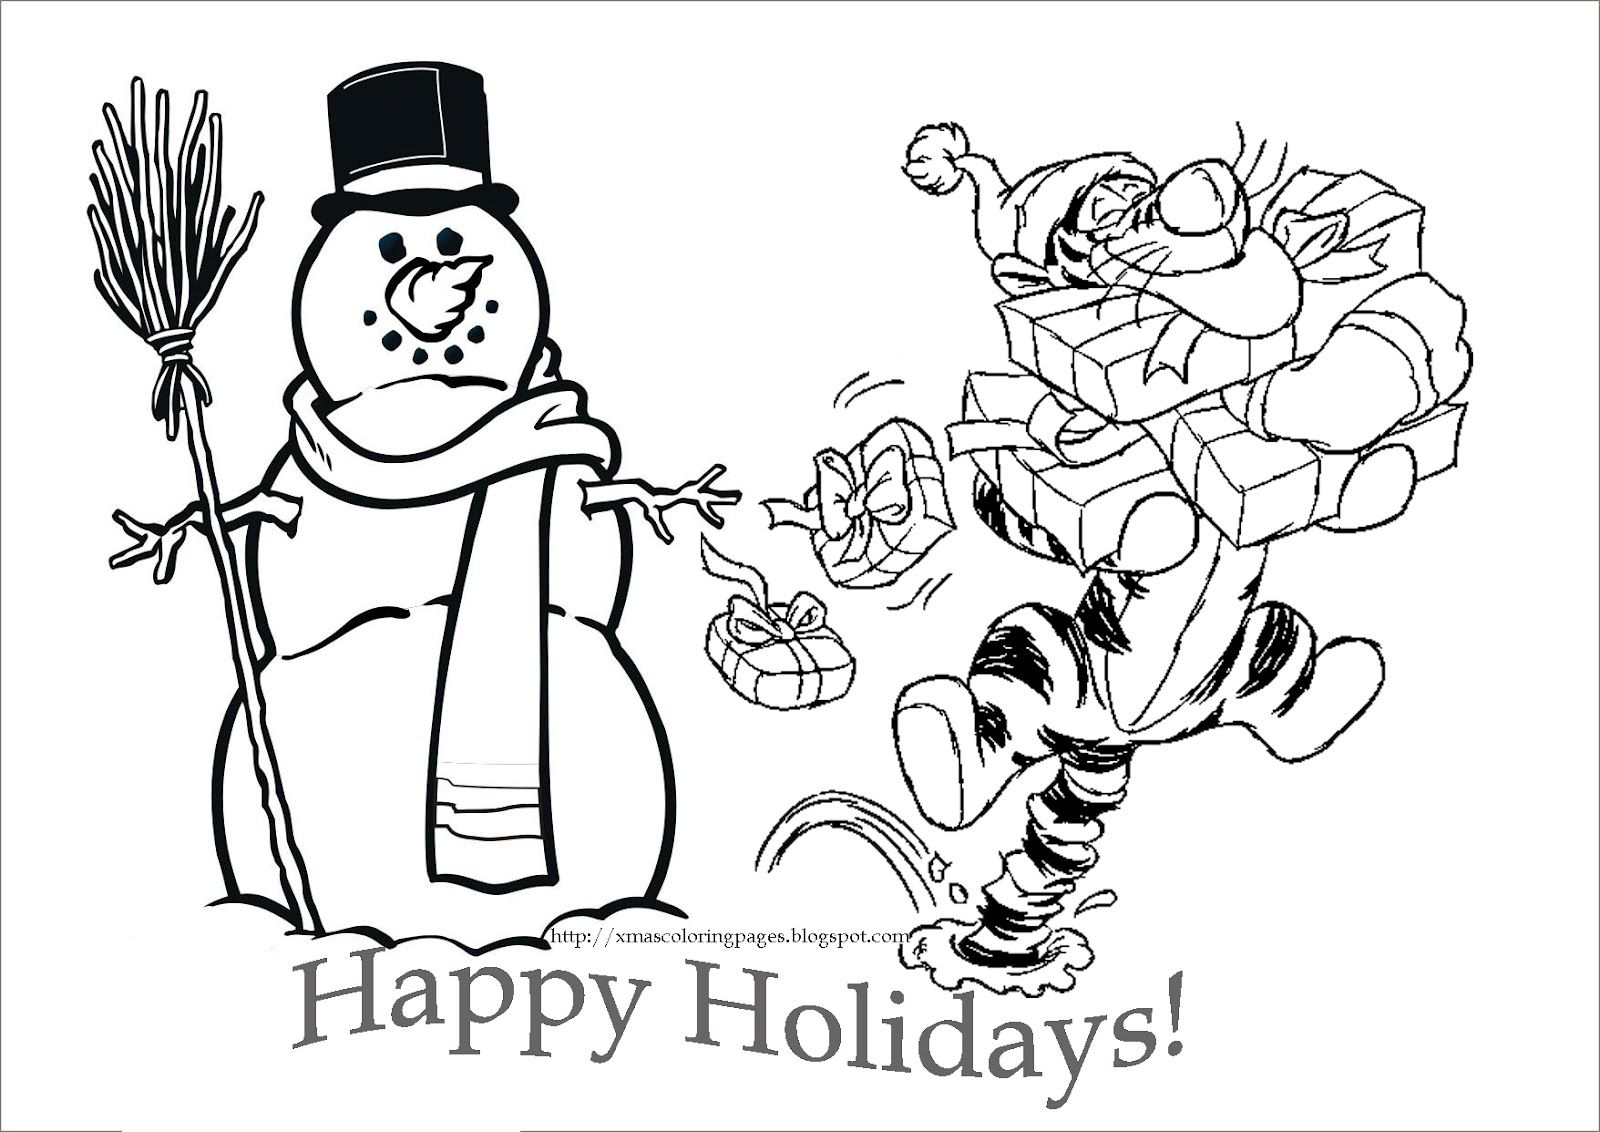 Lego Christmas Coloring Pages With DISNEY COLORING PAGES Paper Art Pinterest Tigger Disney